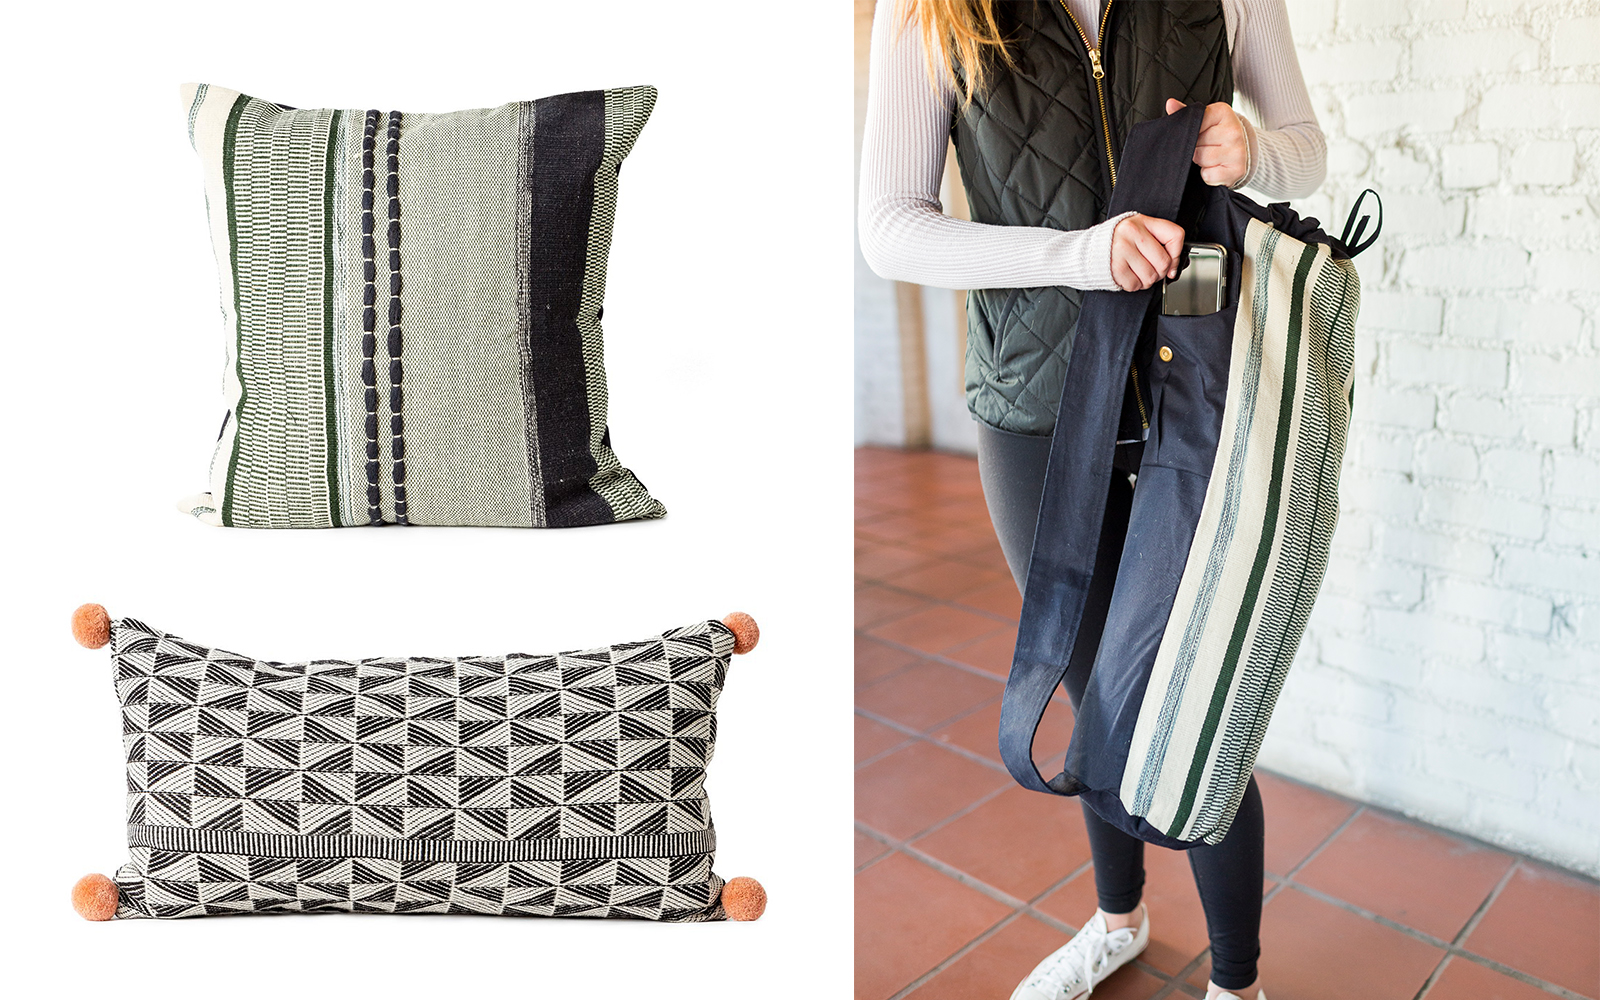 Awamaki woven pillows and yoga mat bag available on The Little Market